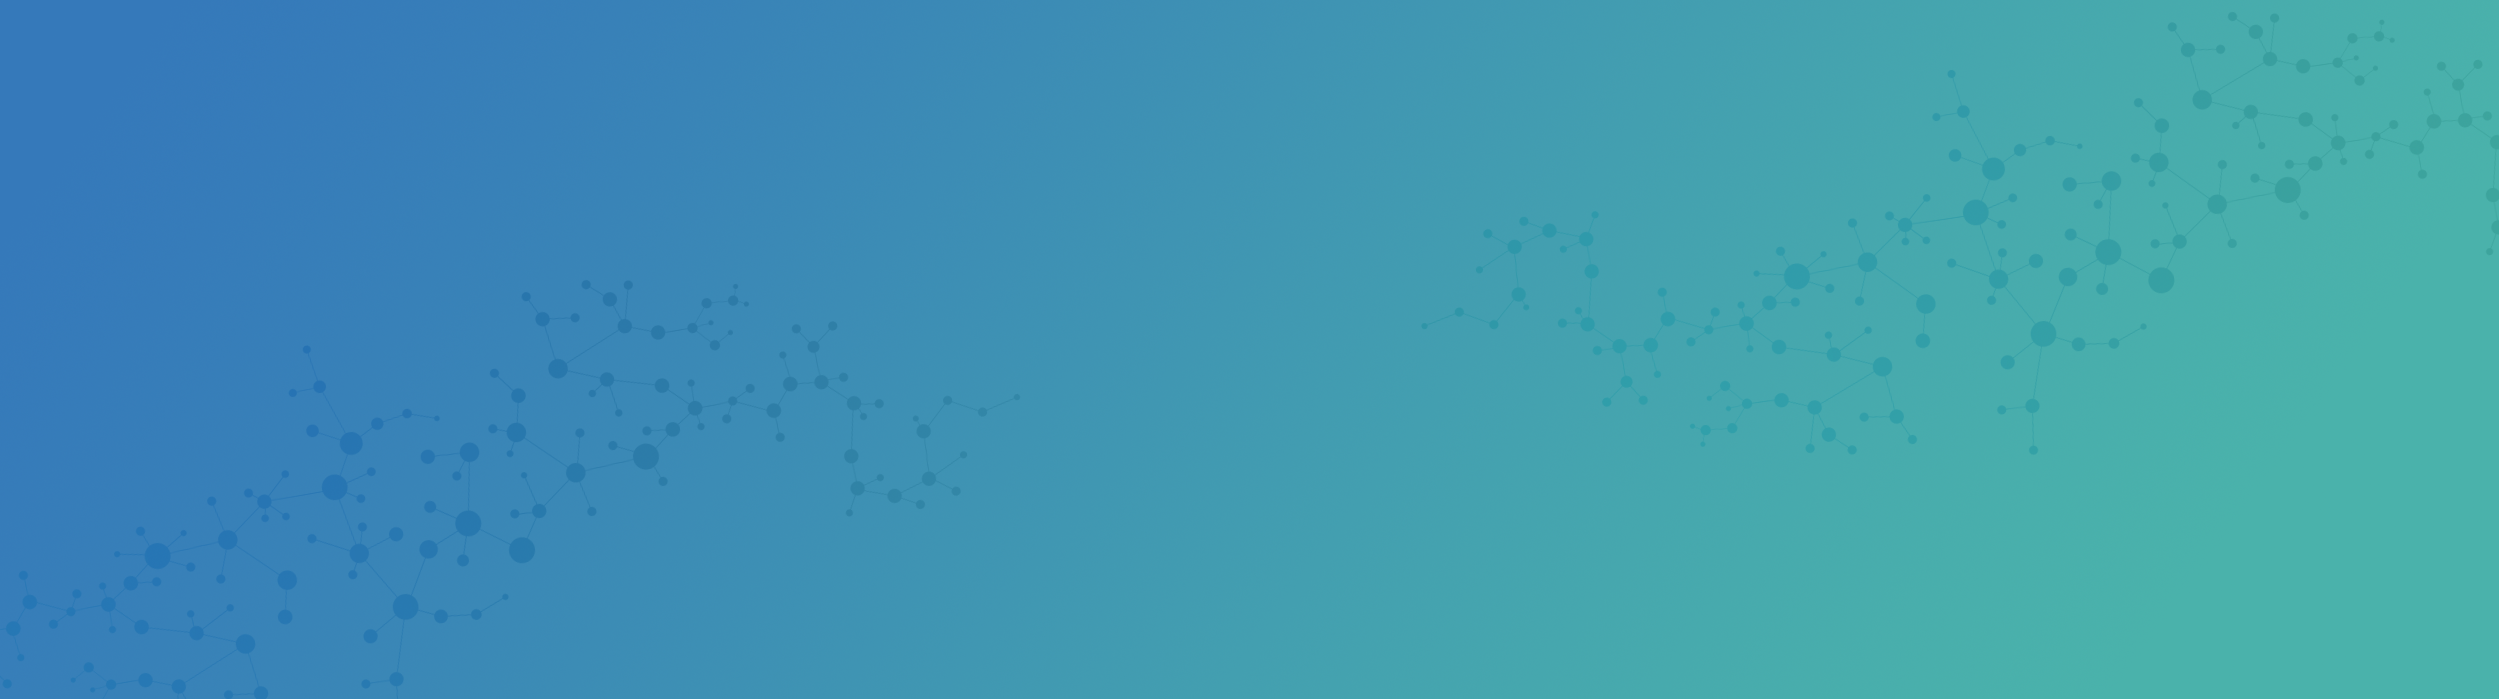 Blue green web banner 2000 x 750 px ver2.png